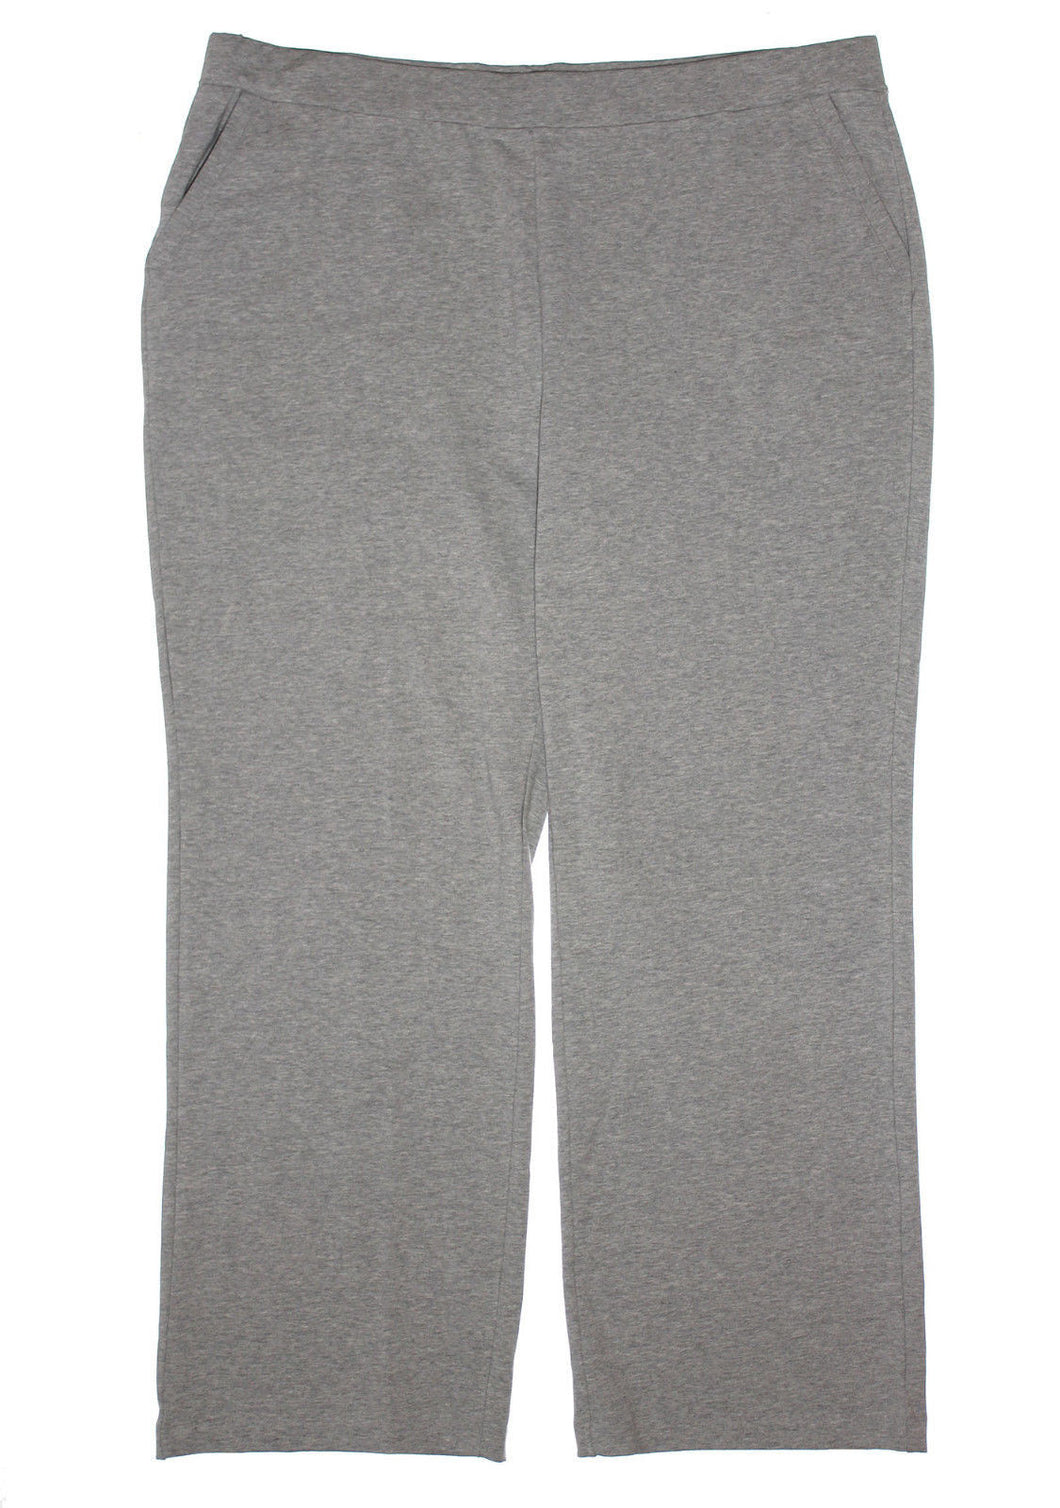 Charter Club Heather Gray Pull On Elastic Waist Casual Pants